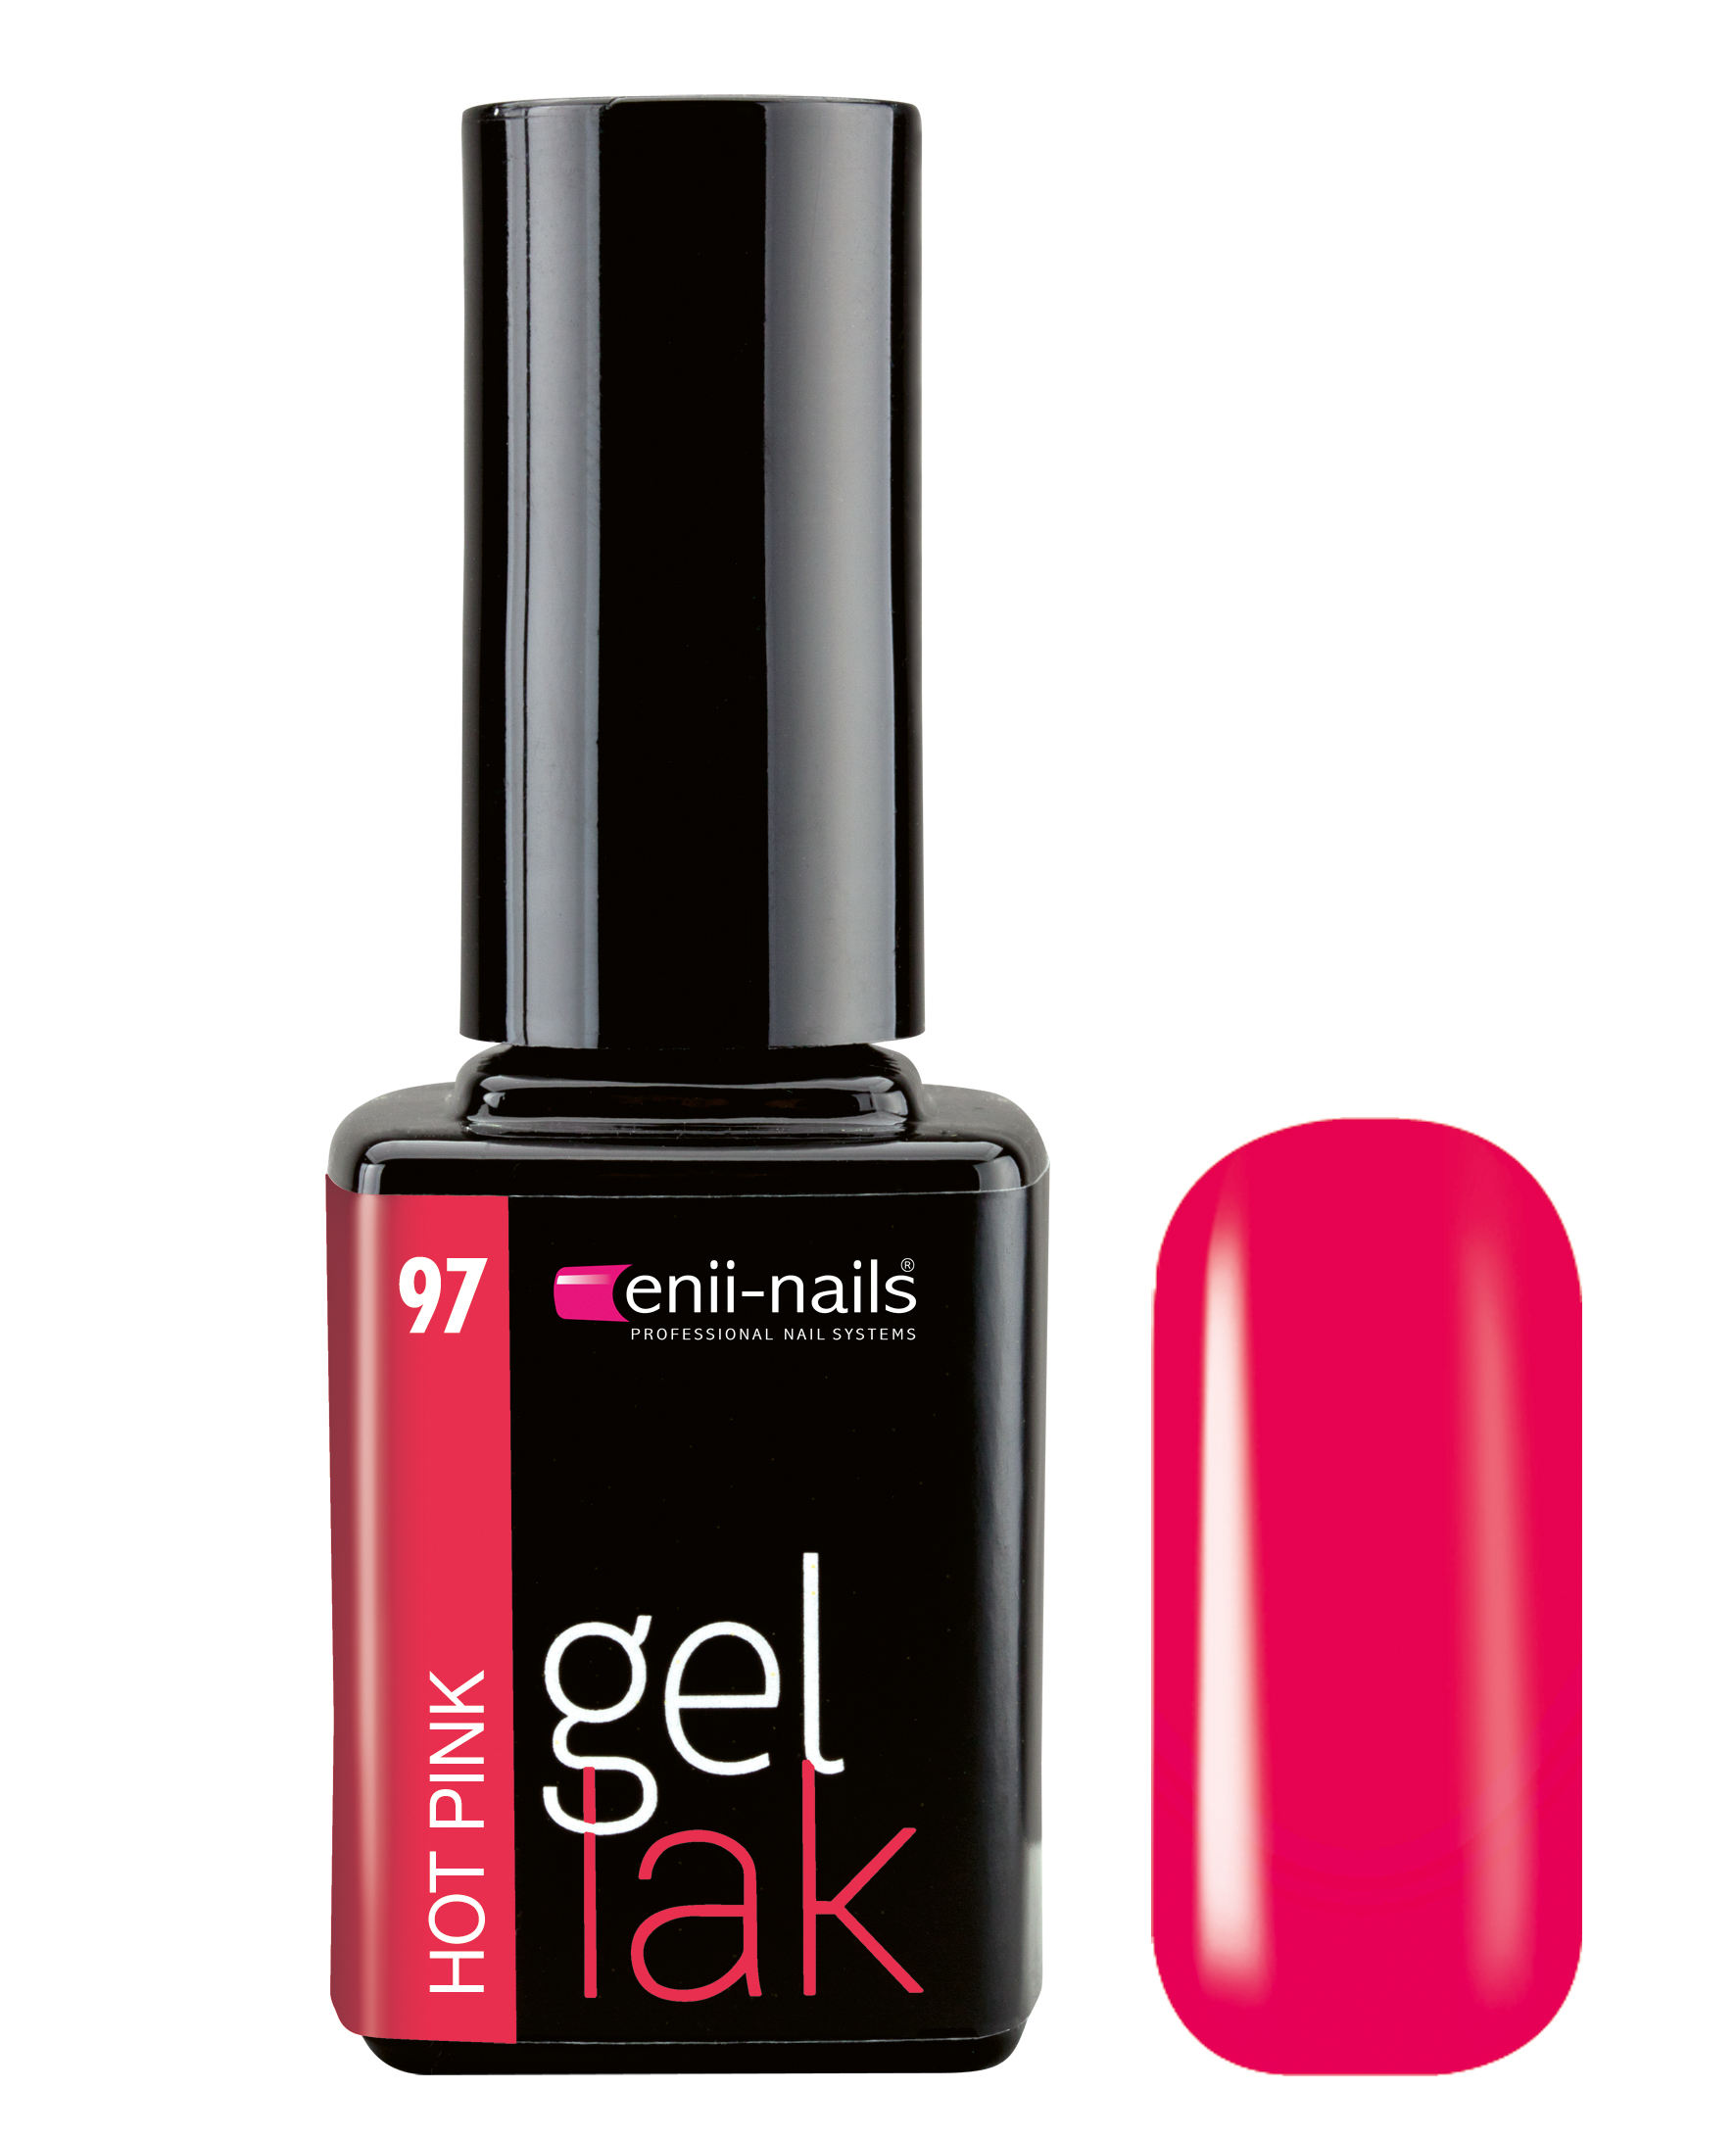 ENII-NAILS Gel lak 11 ml - Hot Pink